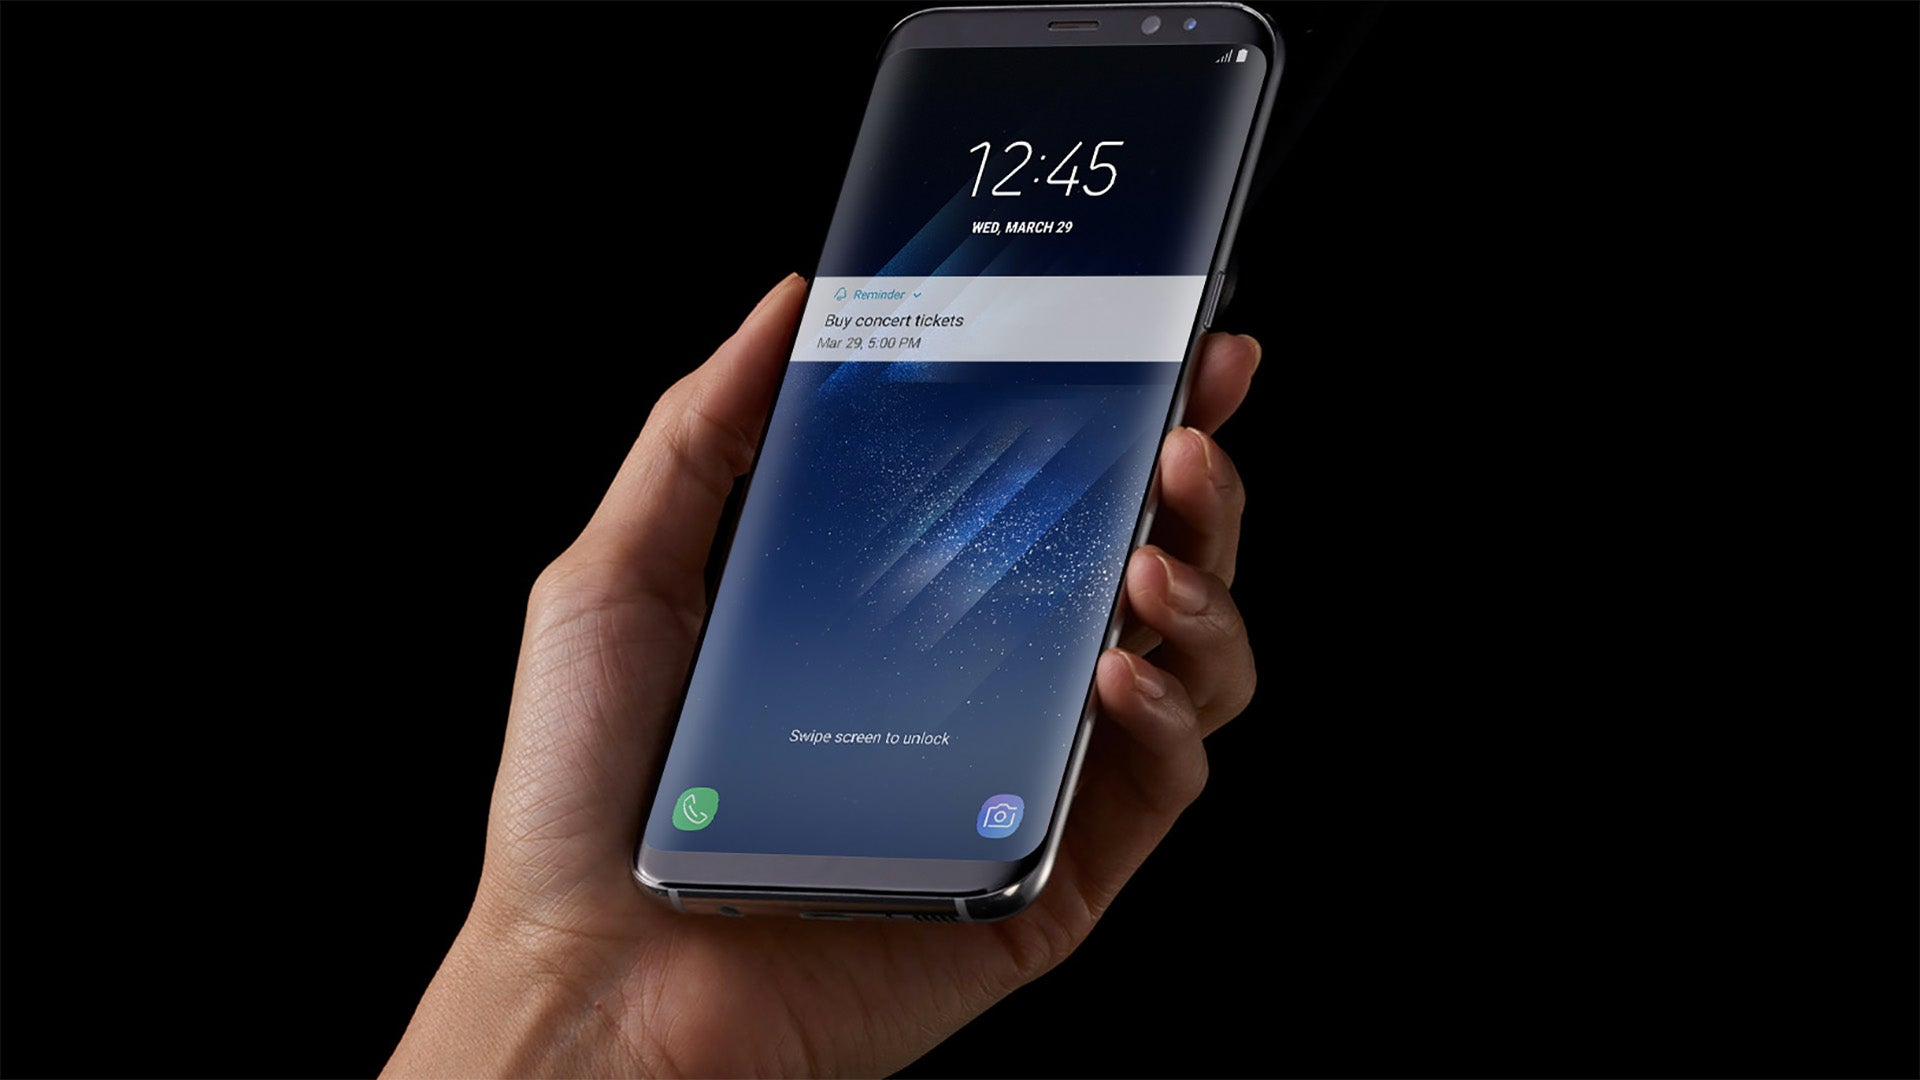 Samsung Galaxy S8 users can finally disable the Bixby button | Trusted Reviews